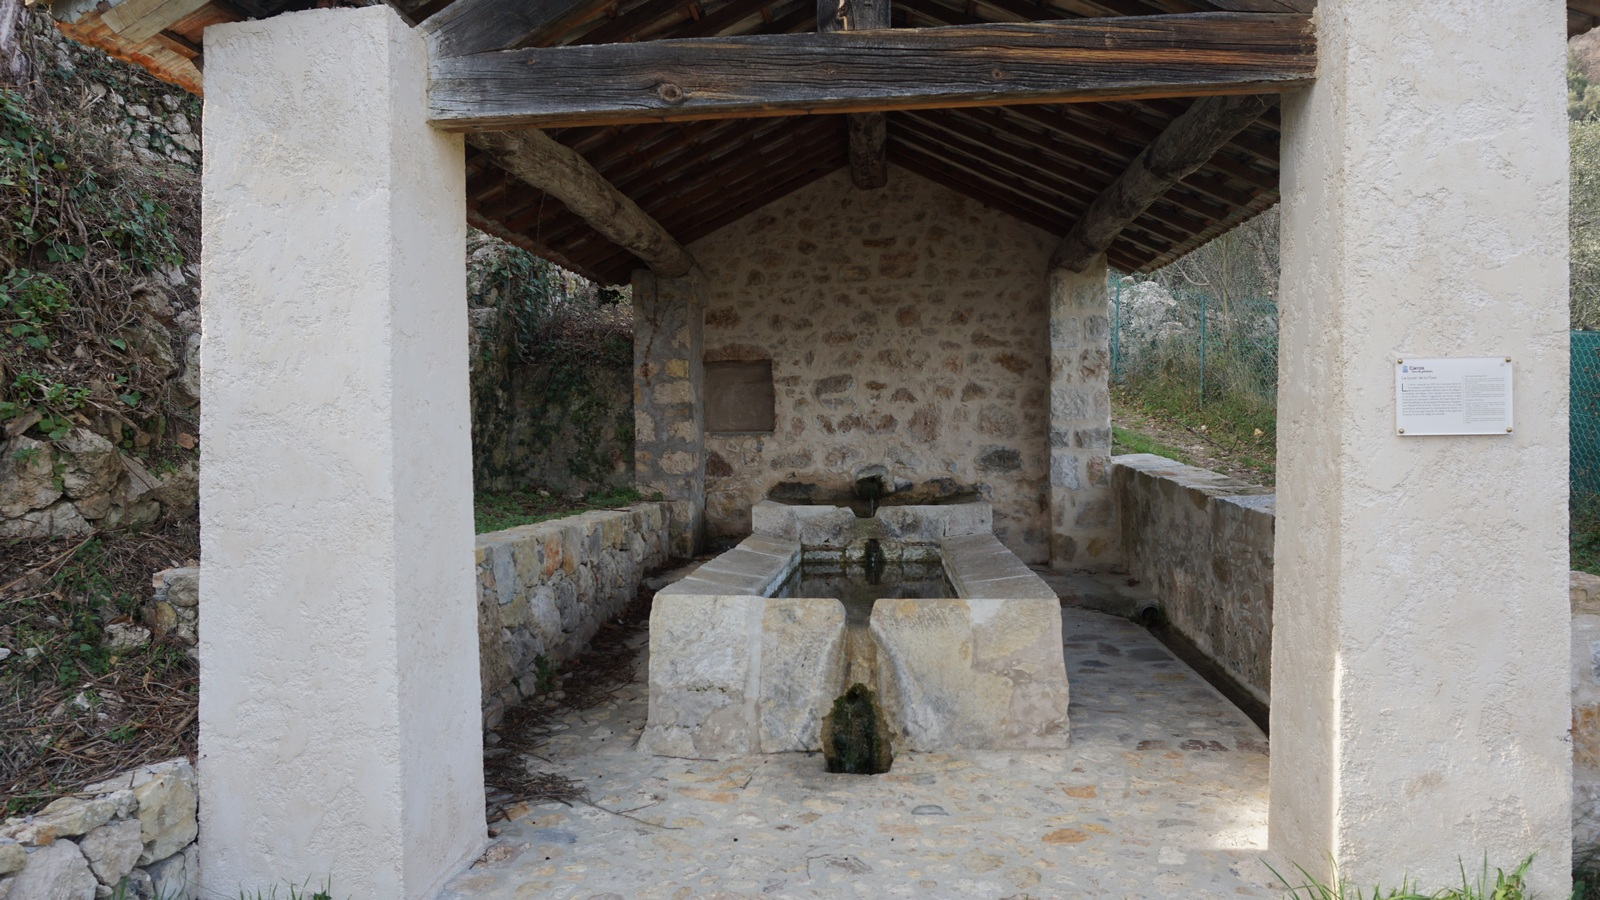 The Carros Village lavoir